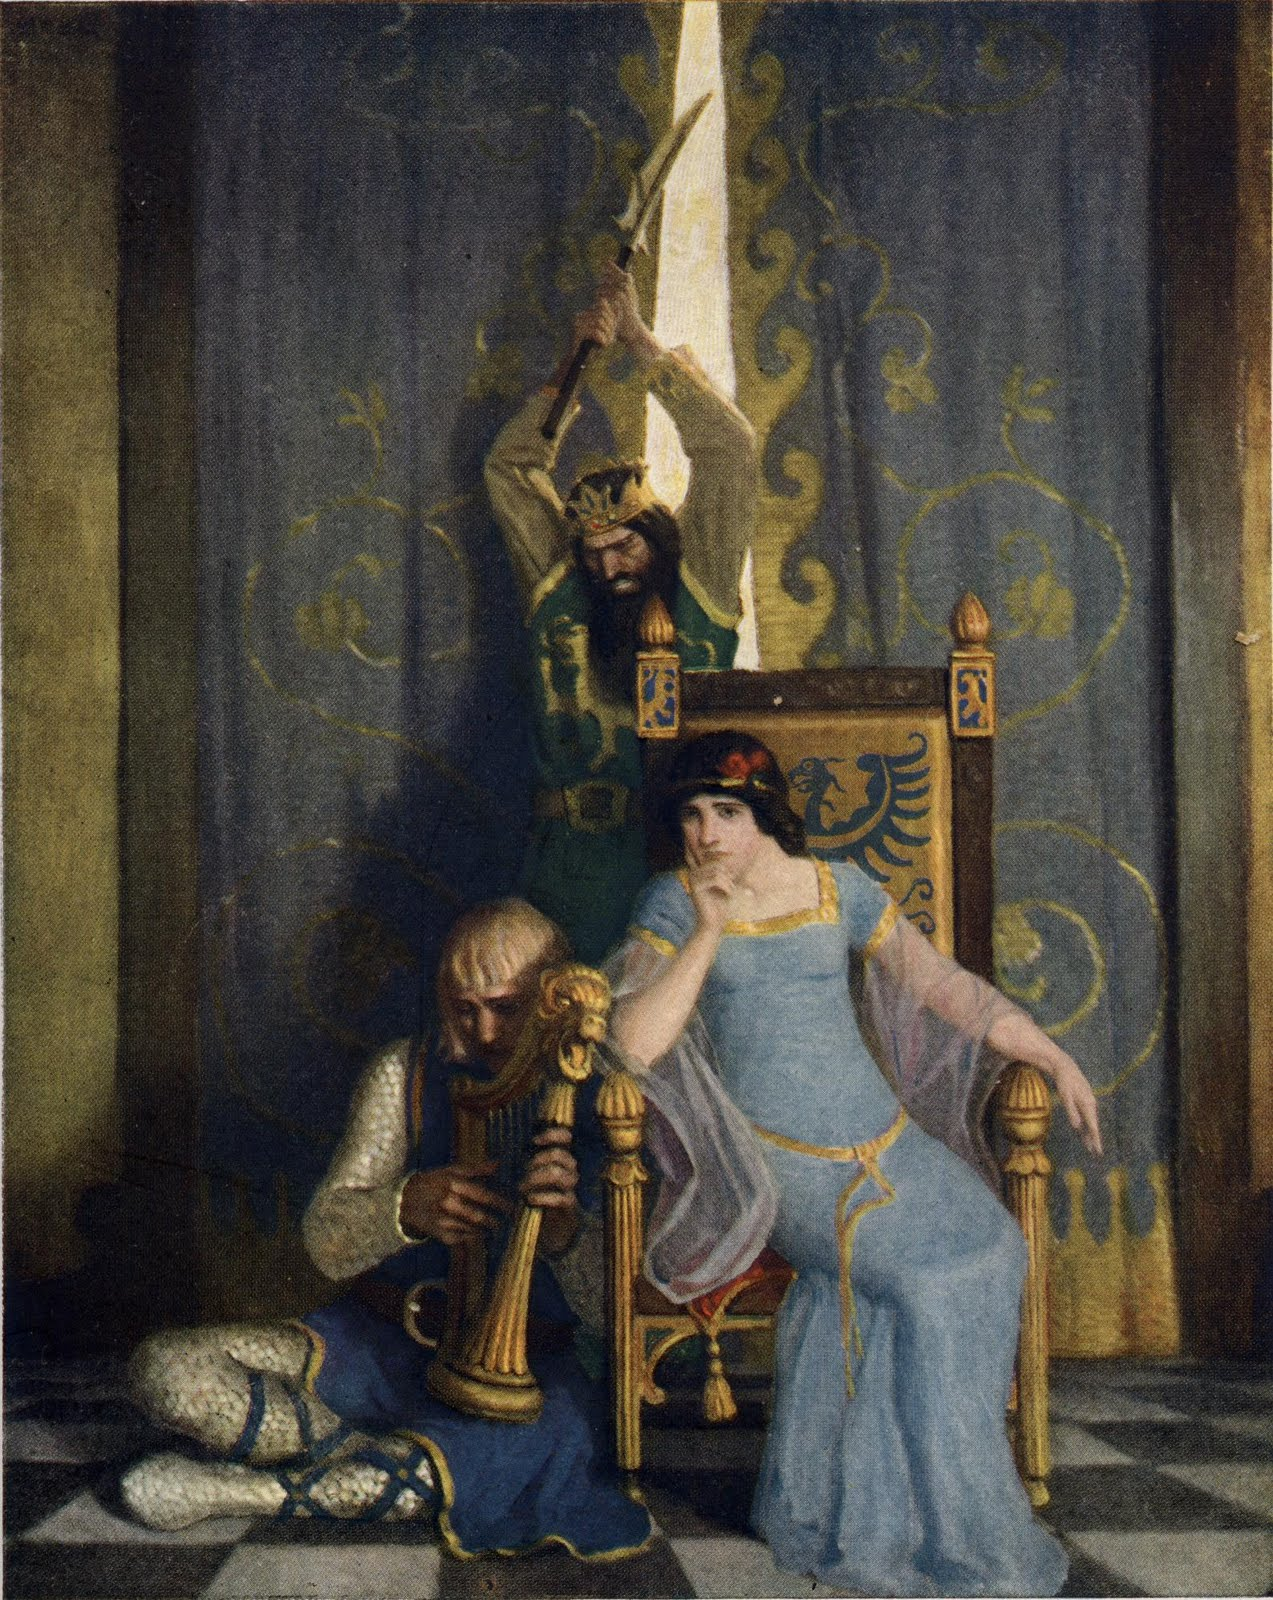 NC Wyeth silent king arthur